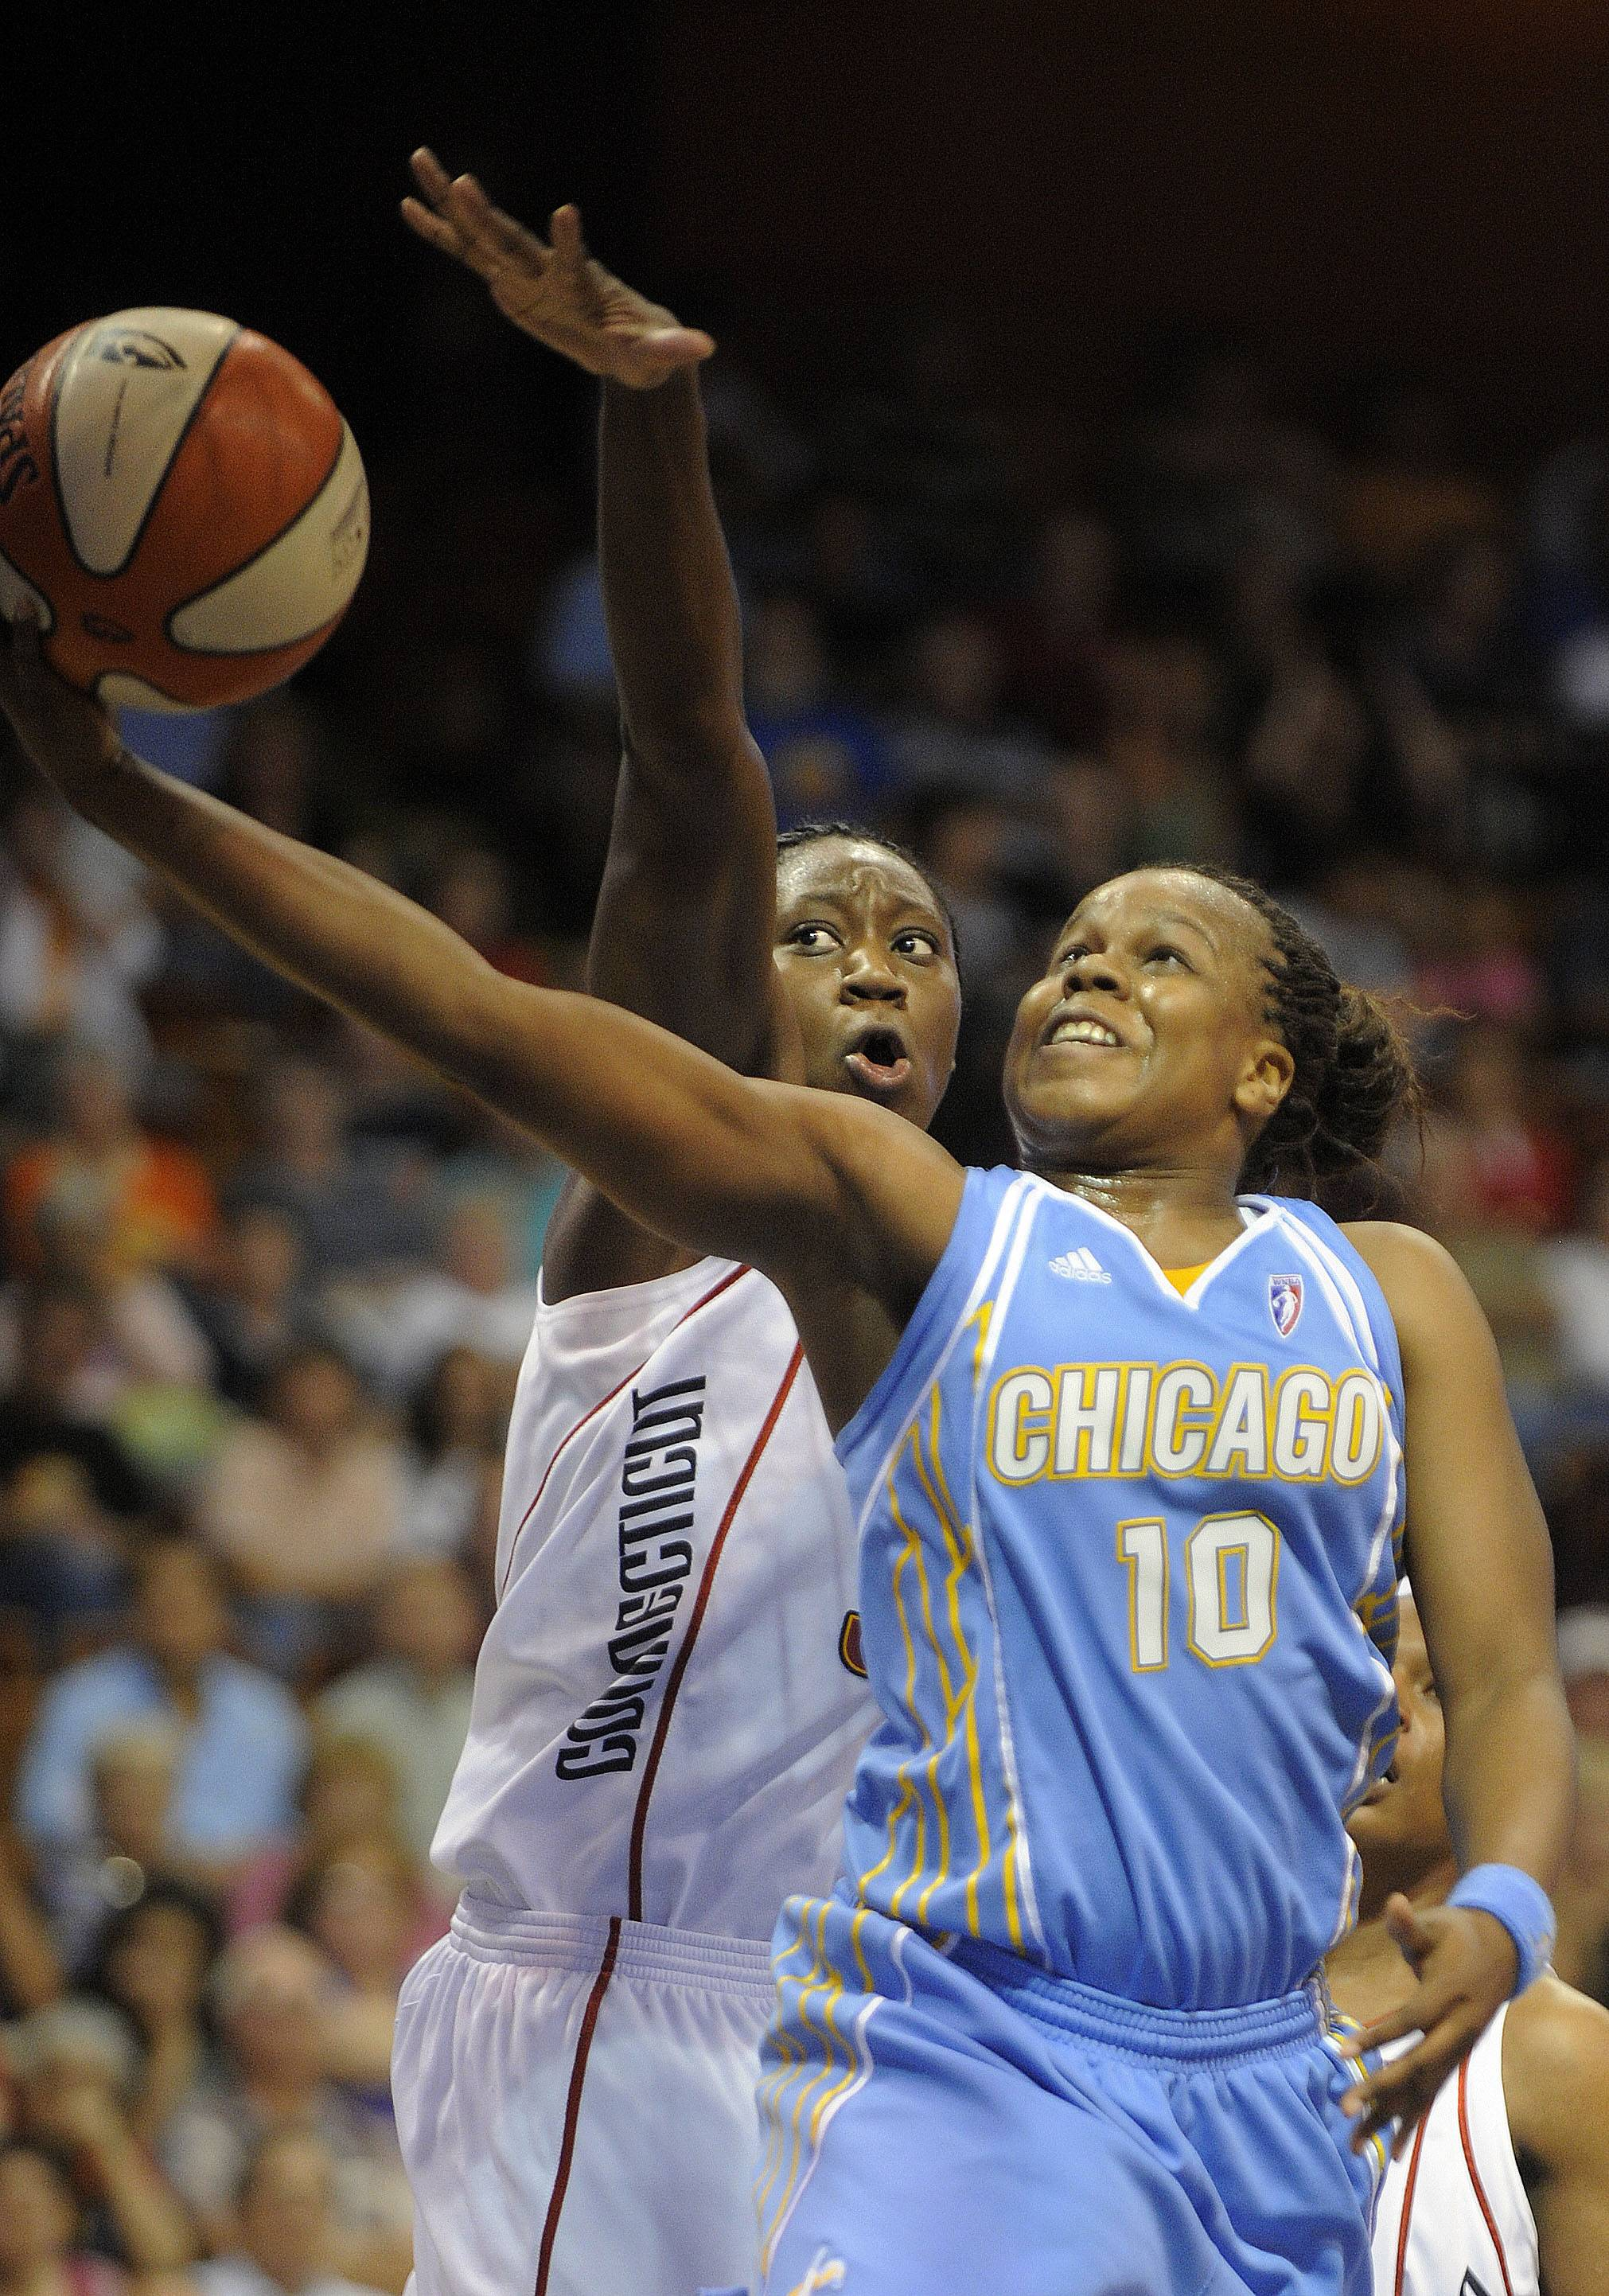 Epiphanny Prince has returned to the Sky after taking some time away from basketball because of mental exhaustion, but she is not quite ready to begin playing.